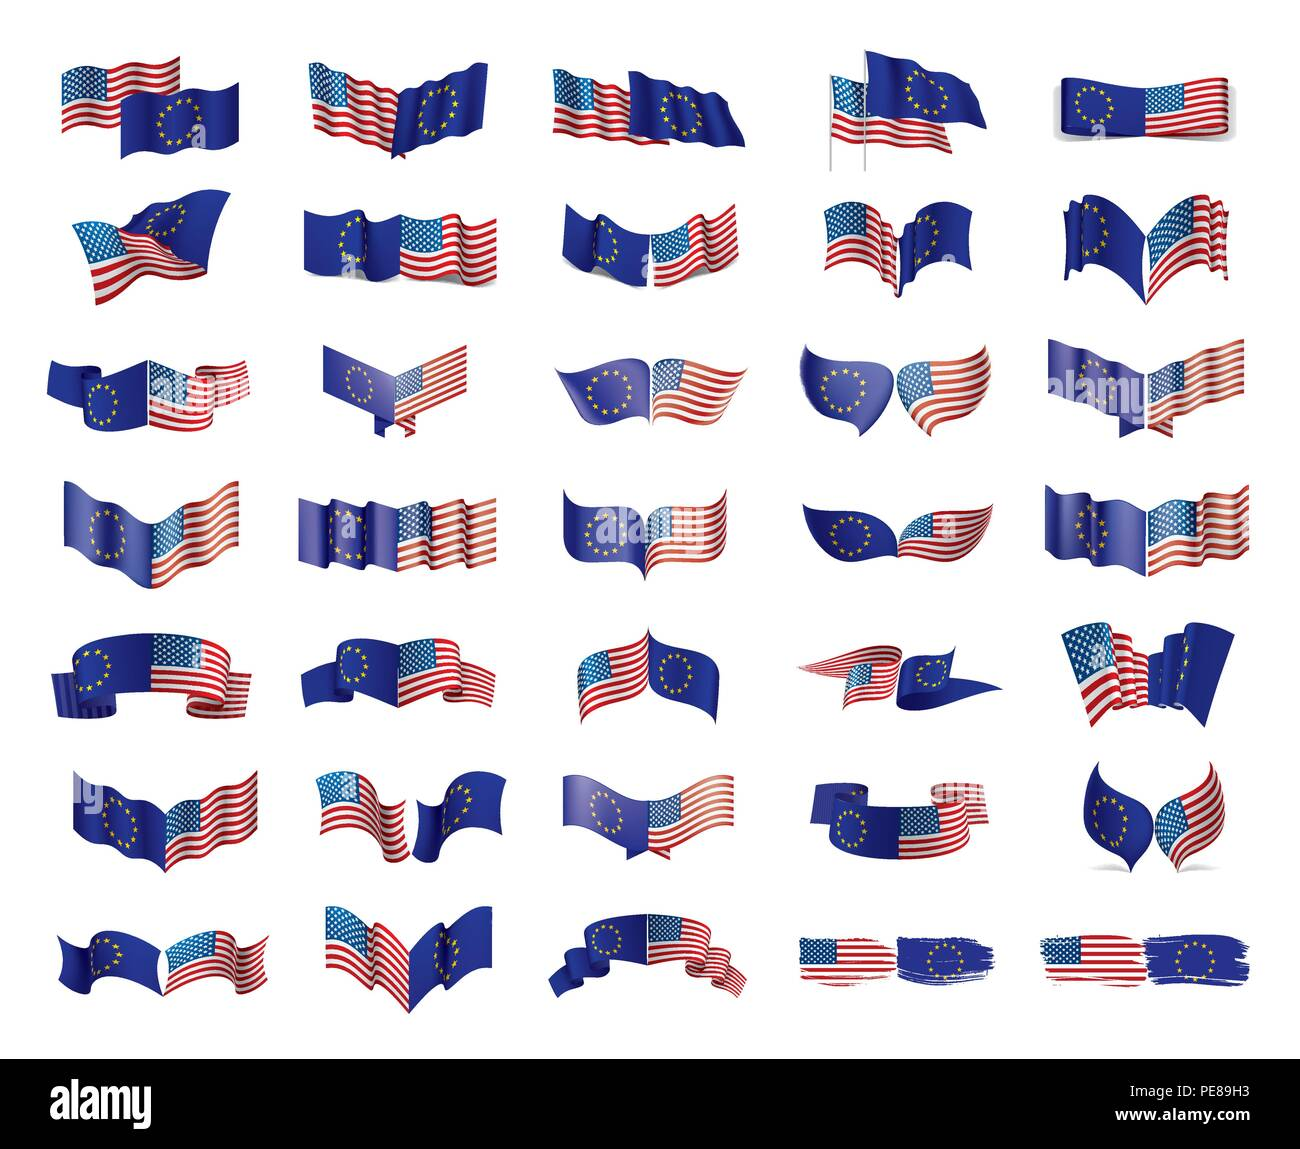 European Union and American flags. Vector illustration. - Stock Image